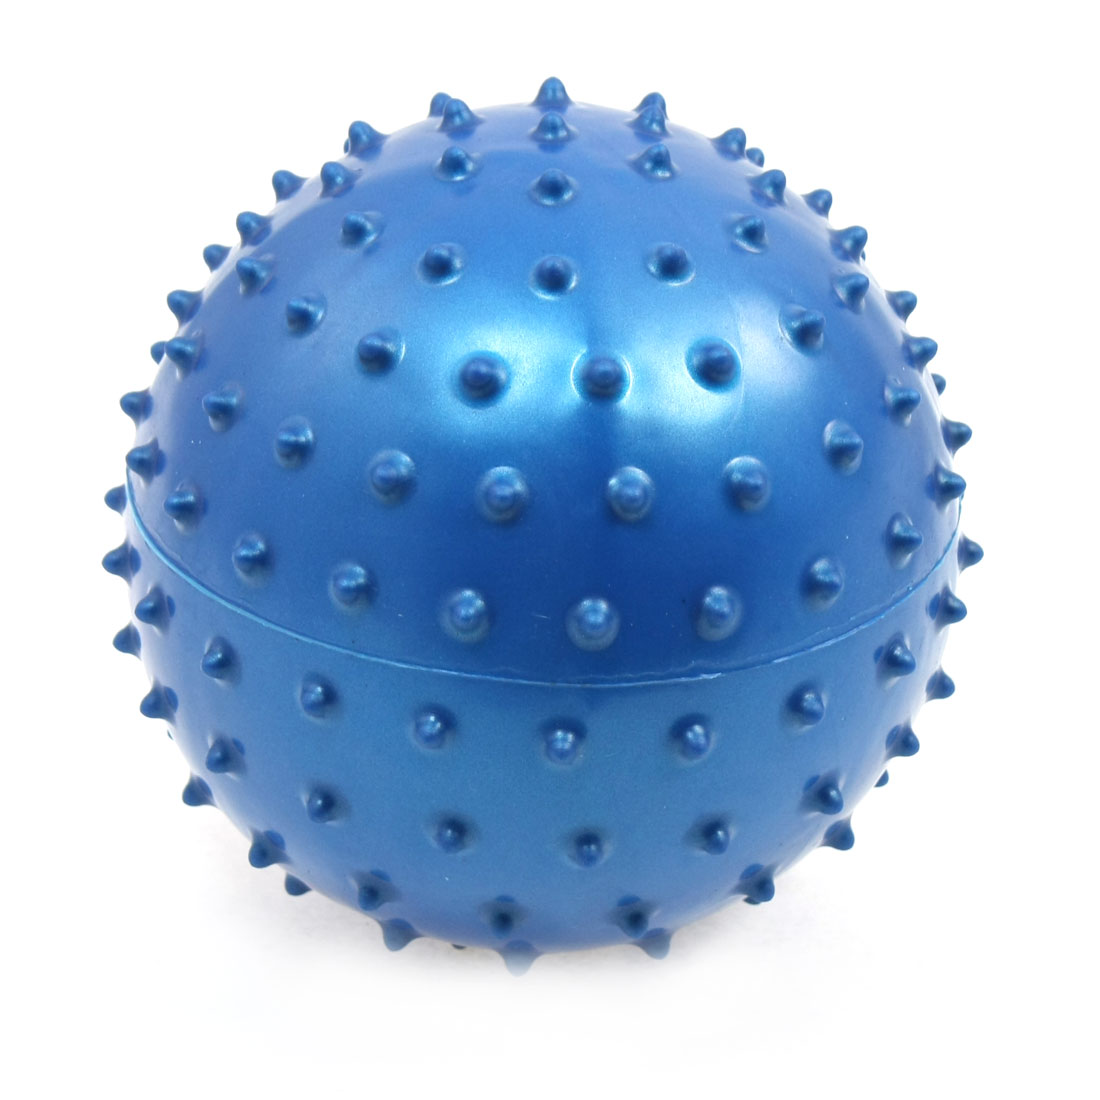 "4.9"" Diameter Blue Knobby Inflatable Massage Ball Toy"